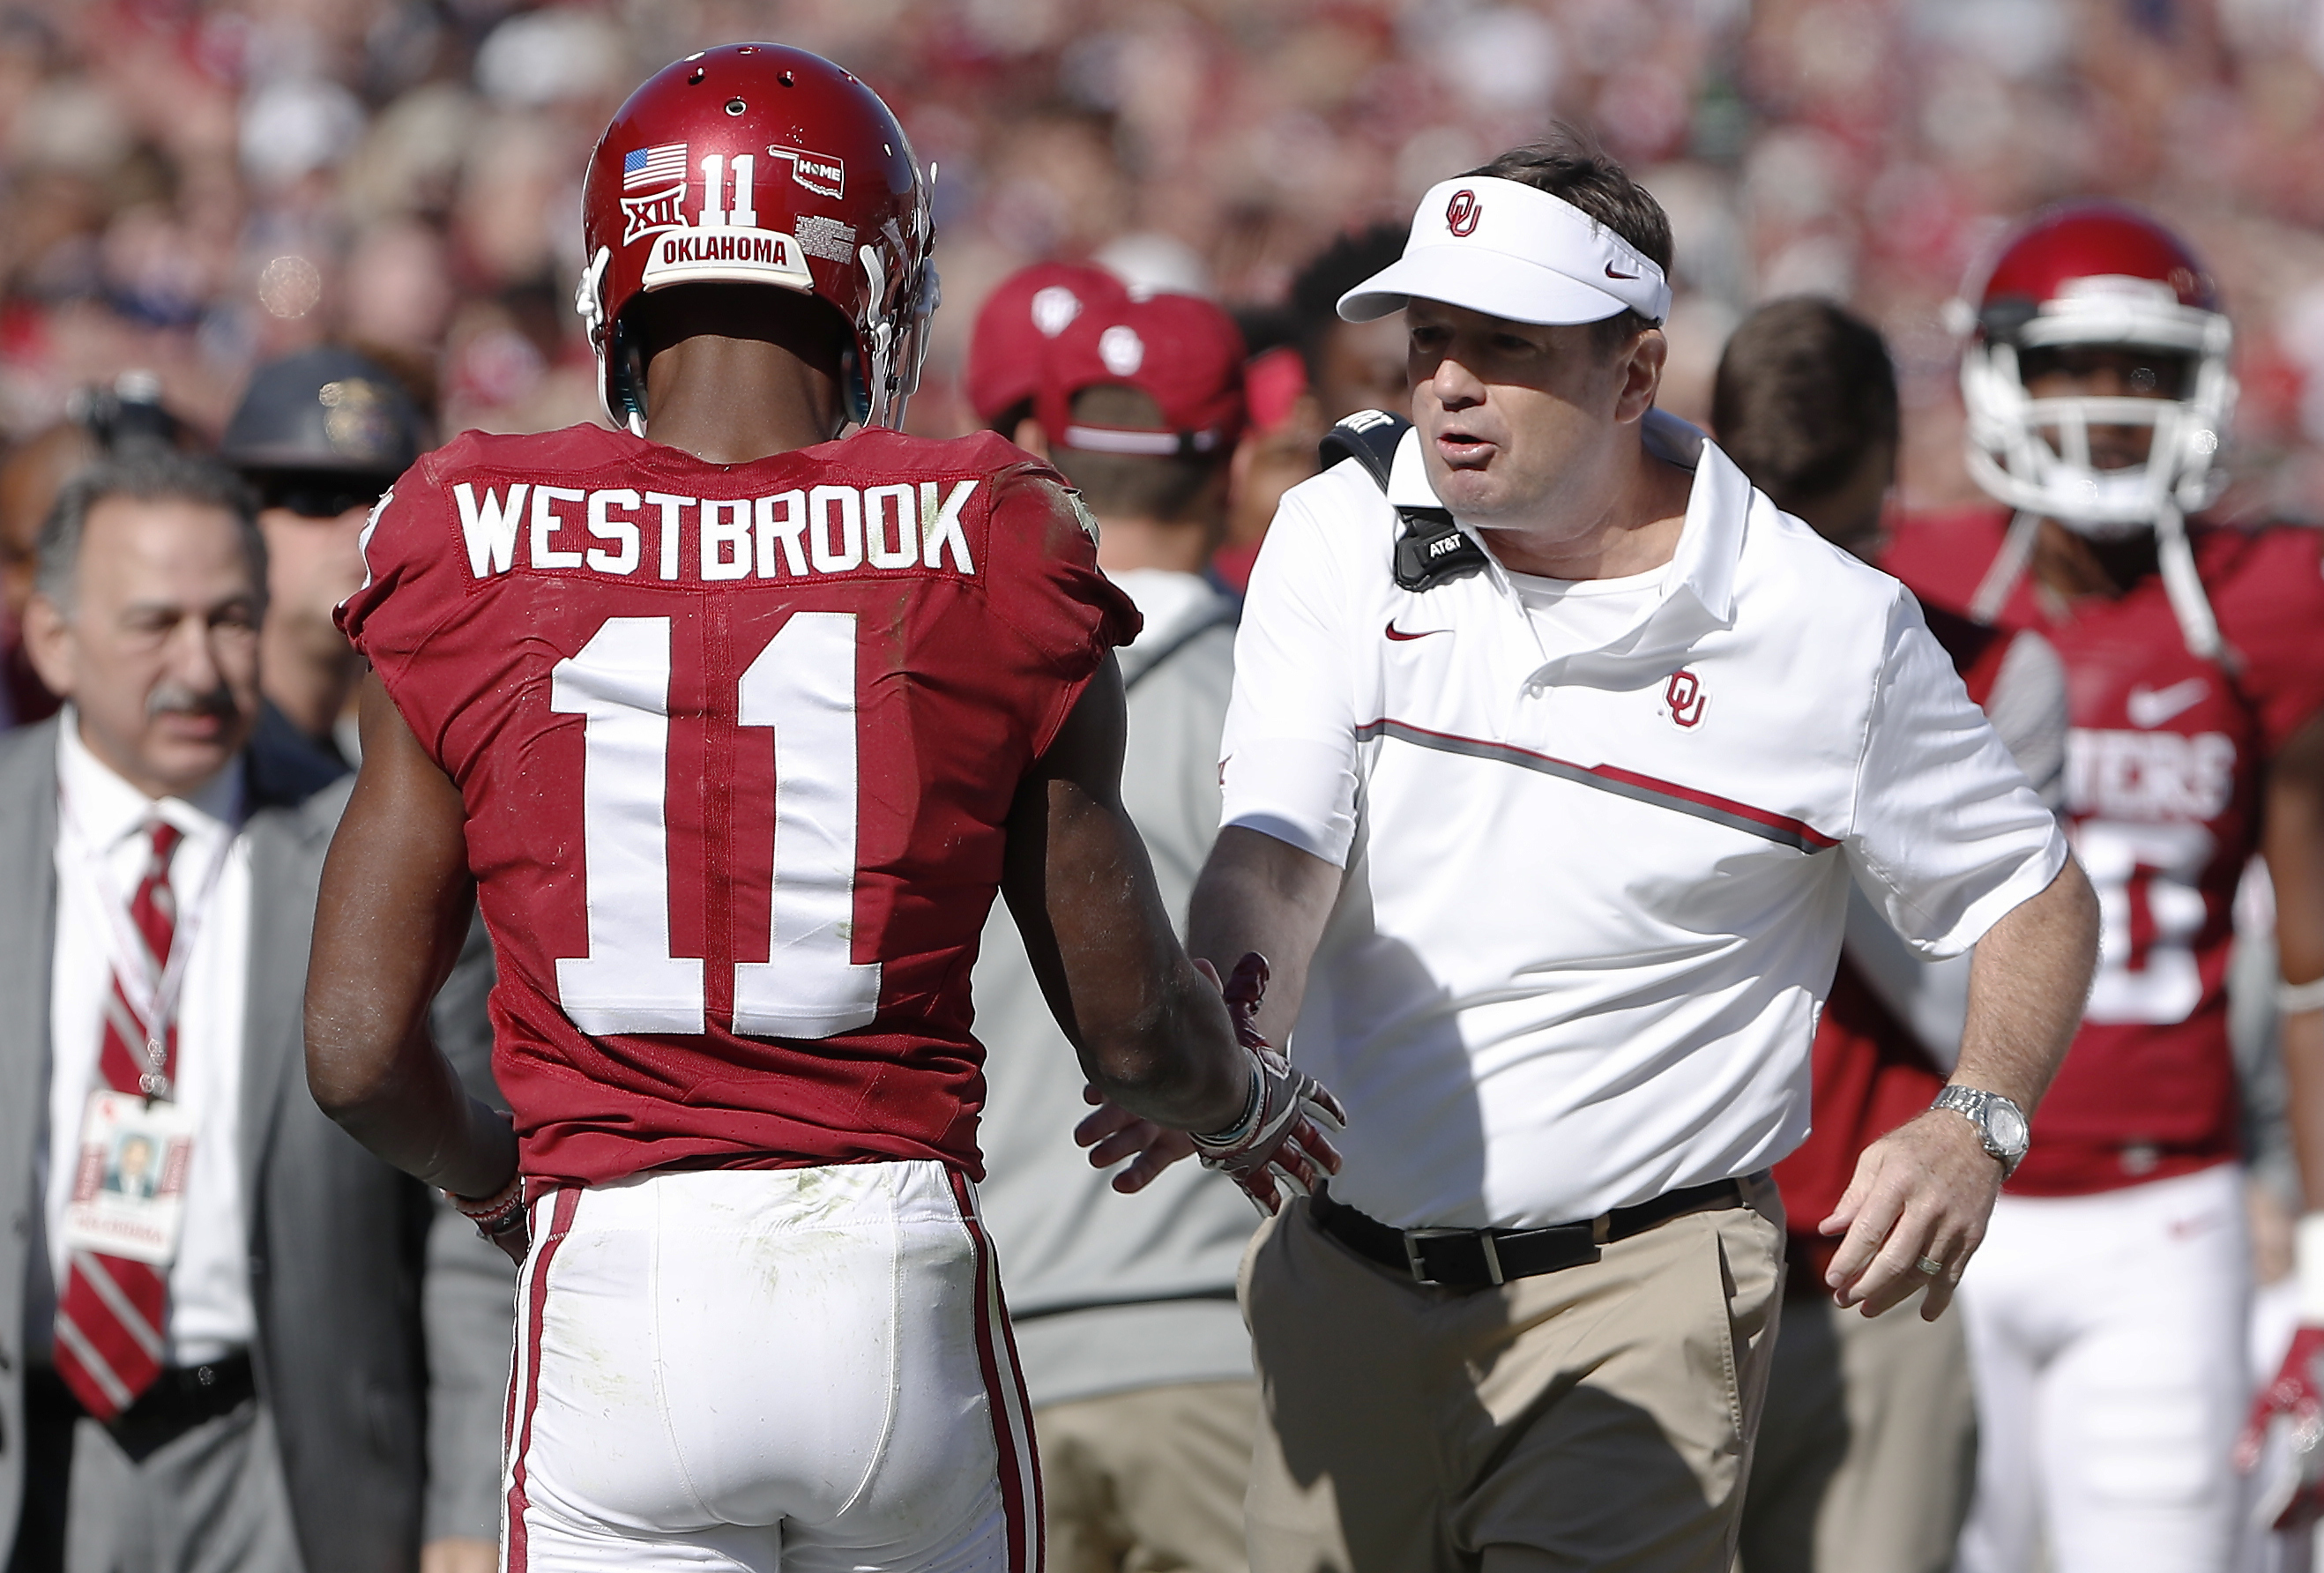 Oklahoma wide receiver Dede Westbrook (11) and head coach Bob Stoops react after Westbrook's touchdown against Baylor during the second half of a NCAA college football game in Norman, Okla. on Saturday, Nov. 12, 2016. Oklahoma won 45-24. (AP Photo/Alonzo